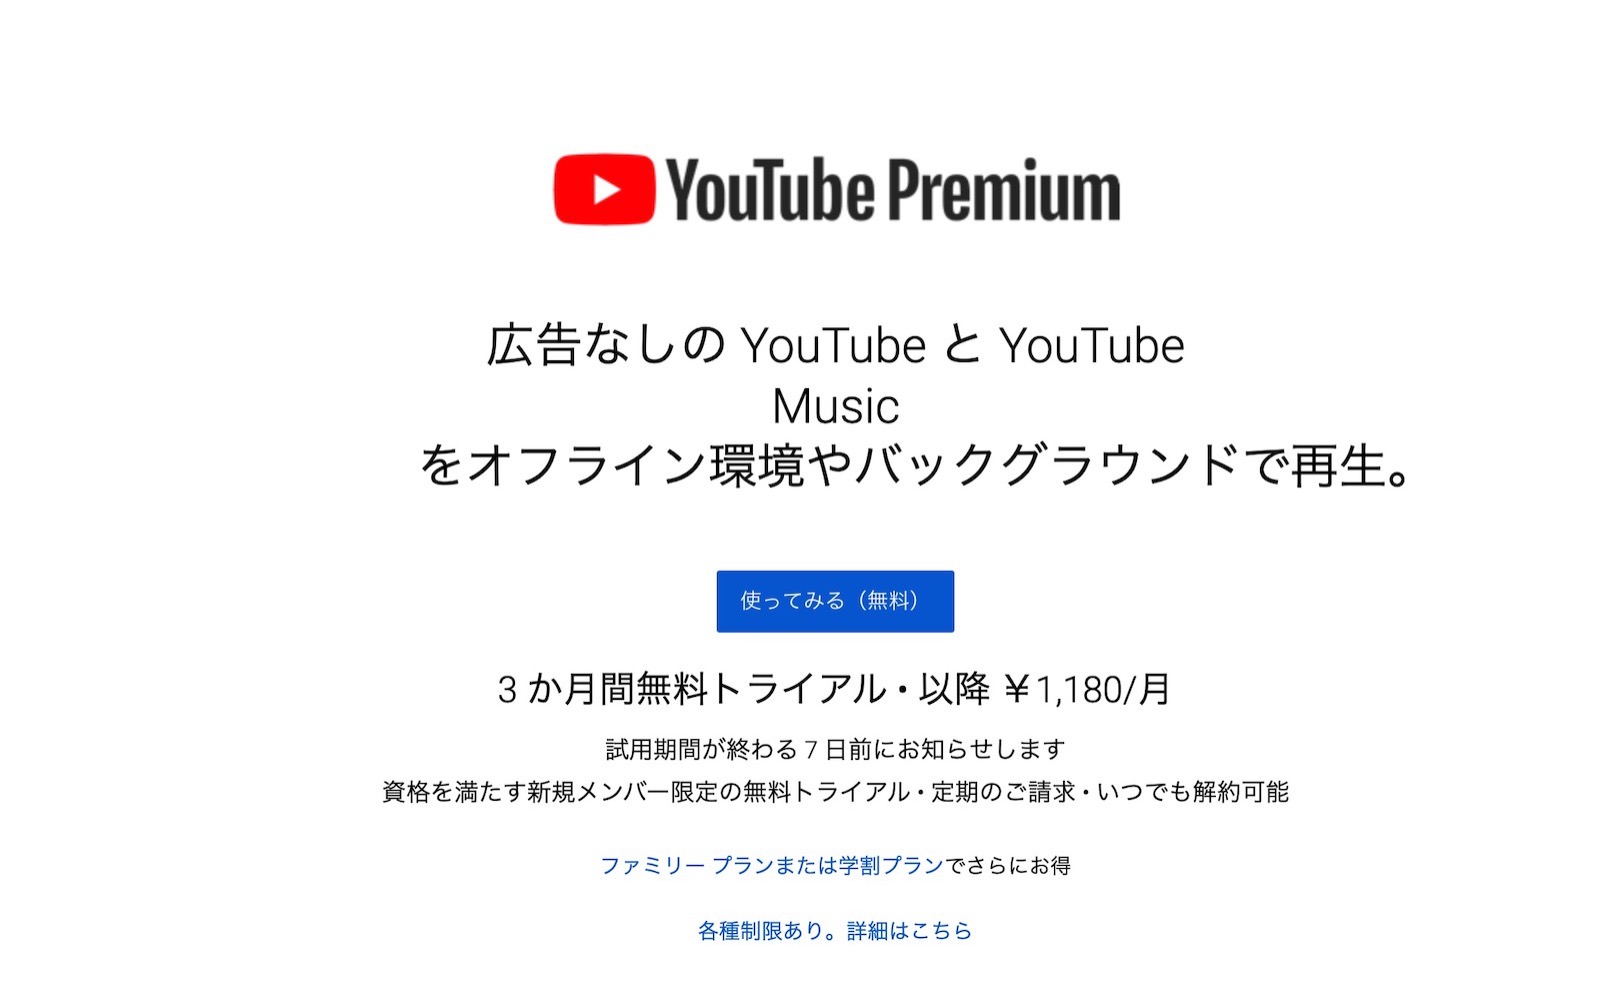 Youtube premium 3month free trial